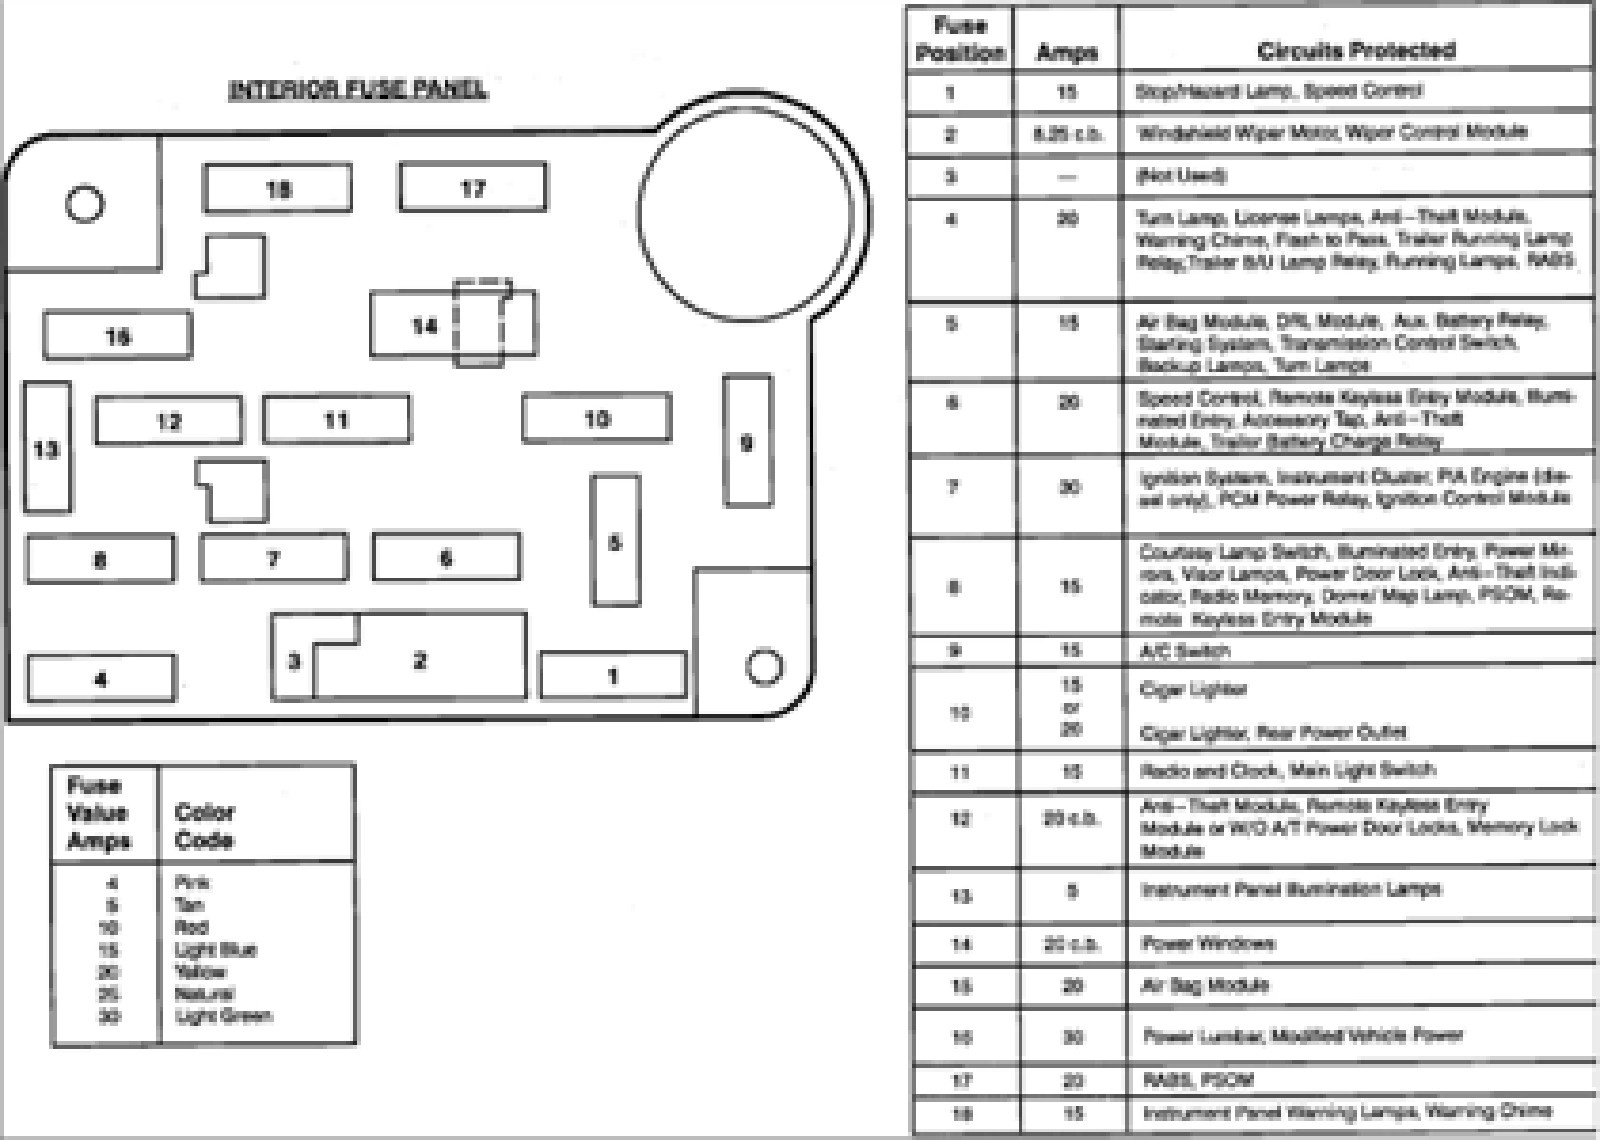 93 Mustang Fuse Panel Diagram Another Blog About Wiring Box 1992 Ford U2022 Rh Twosoutherndivas Co 1993